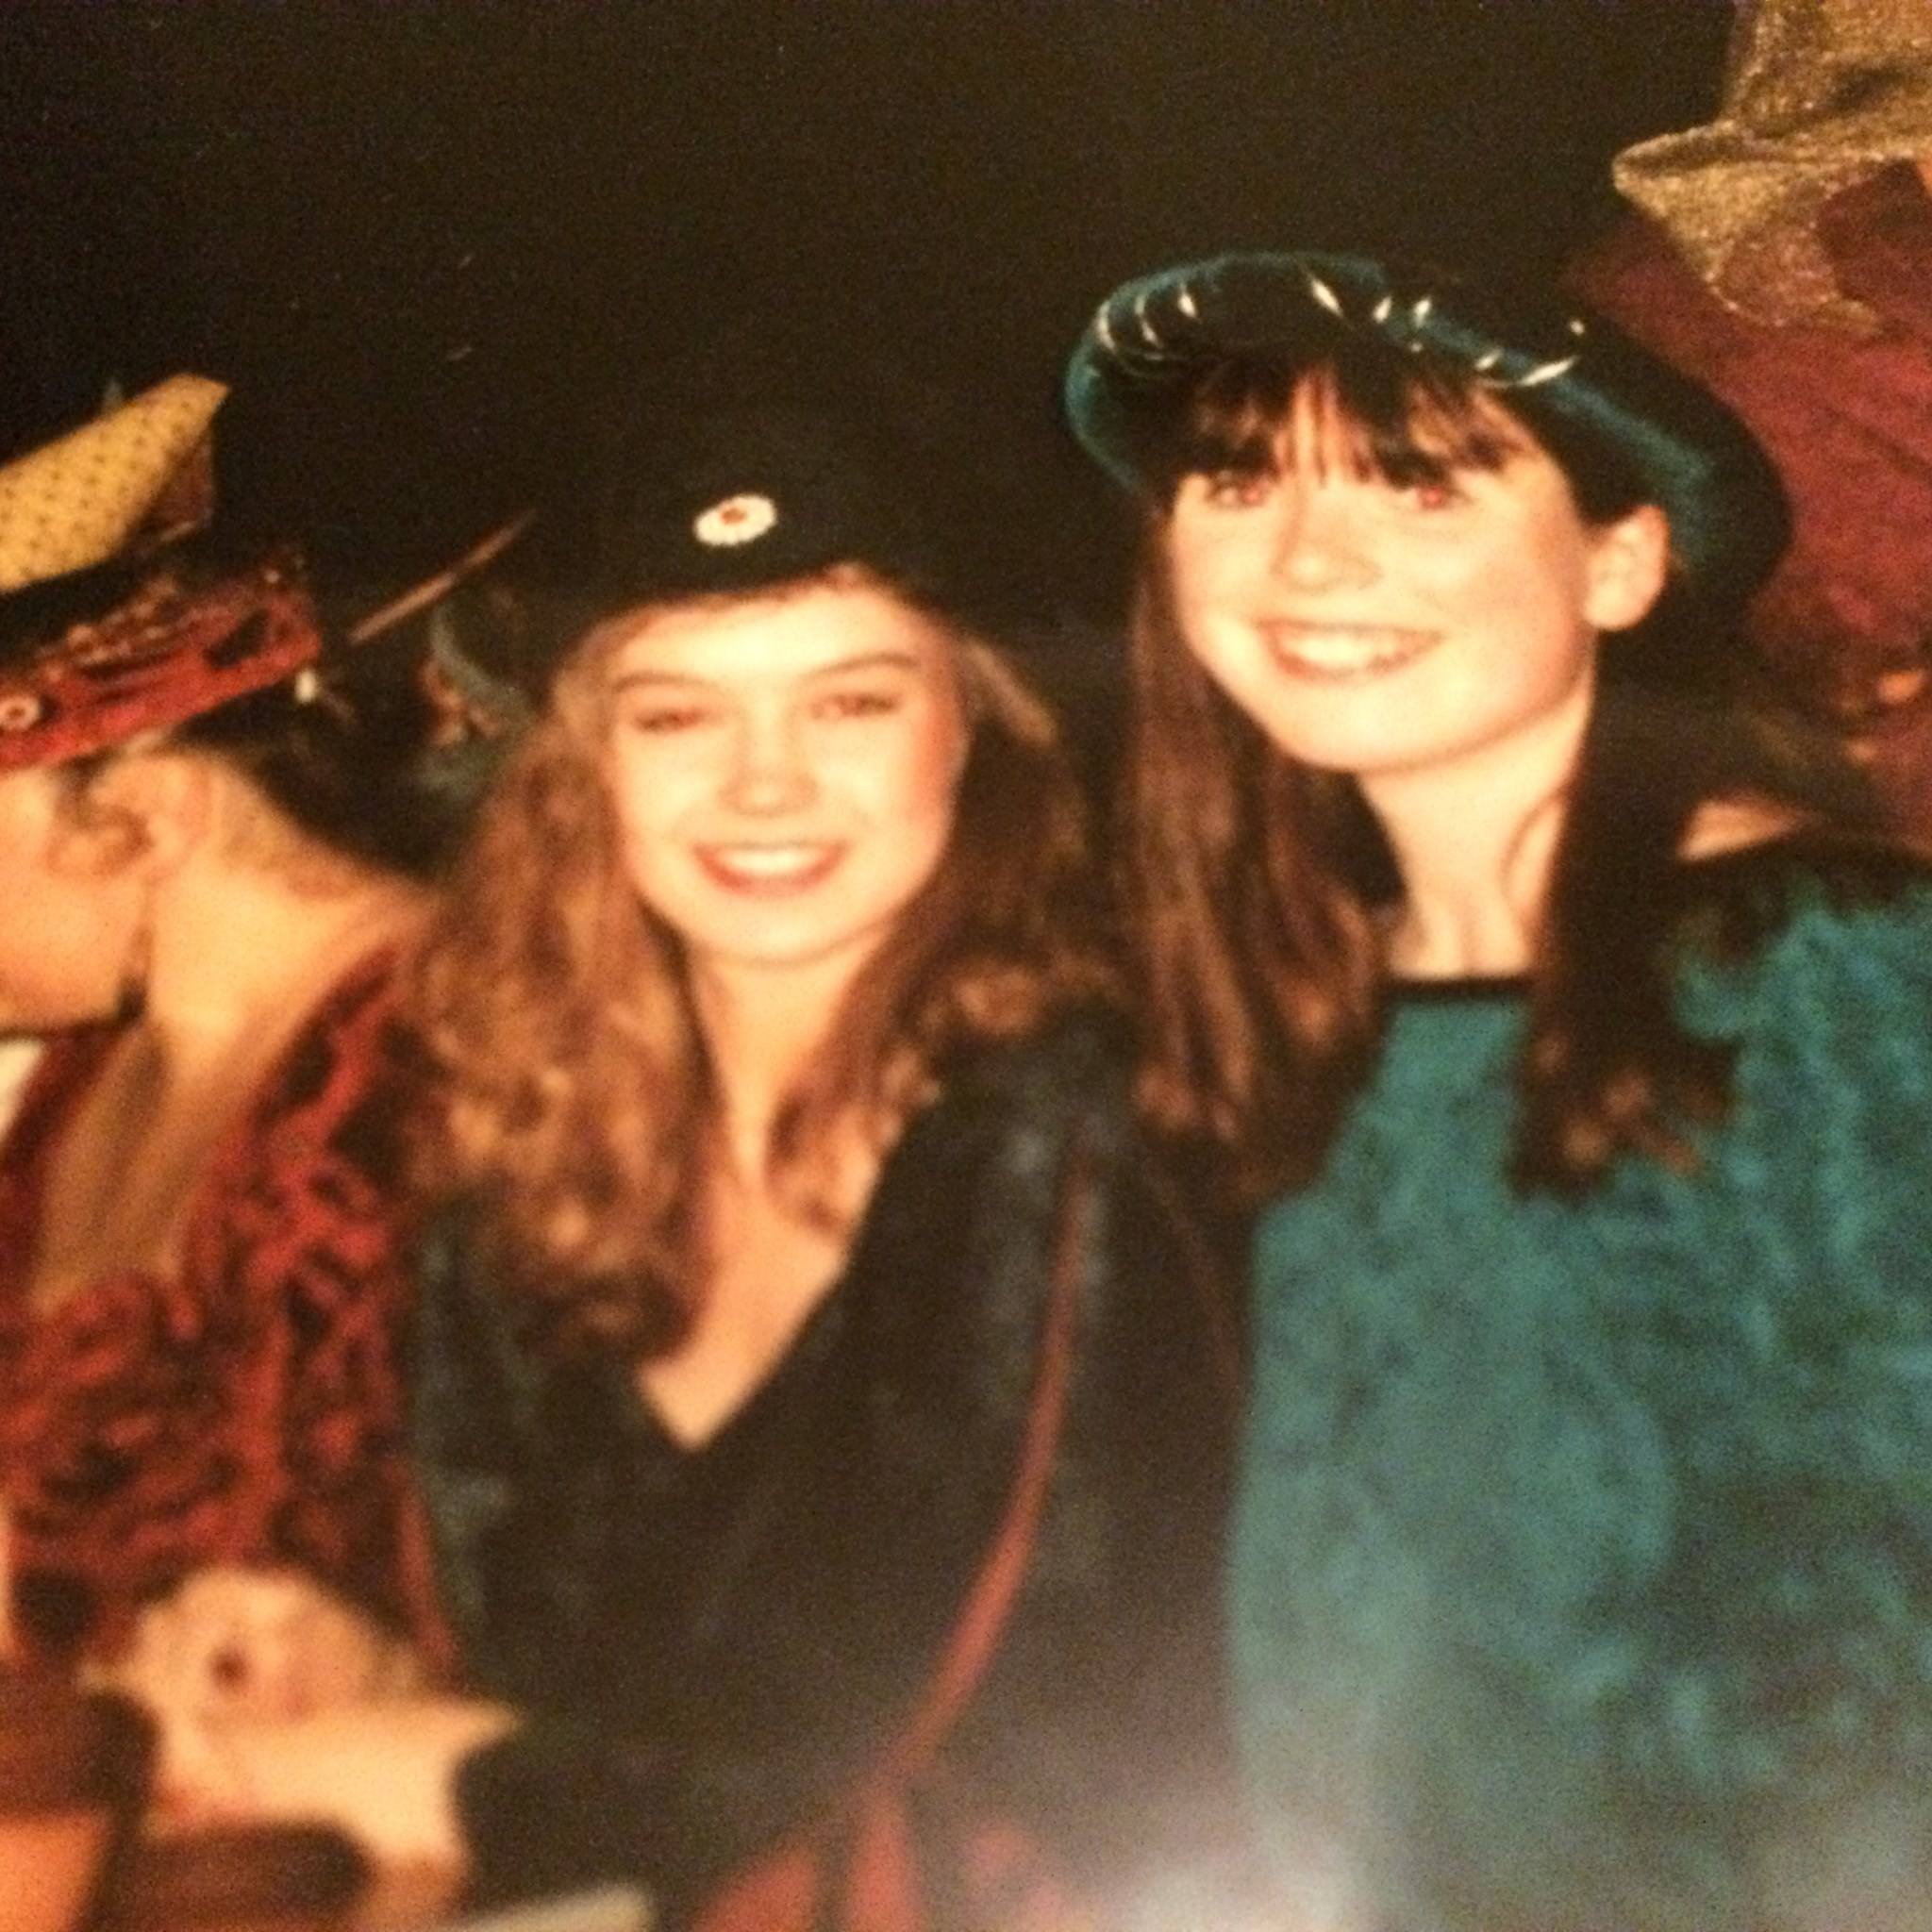 1993 - we were 21 and looked very young and innocent!